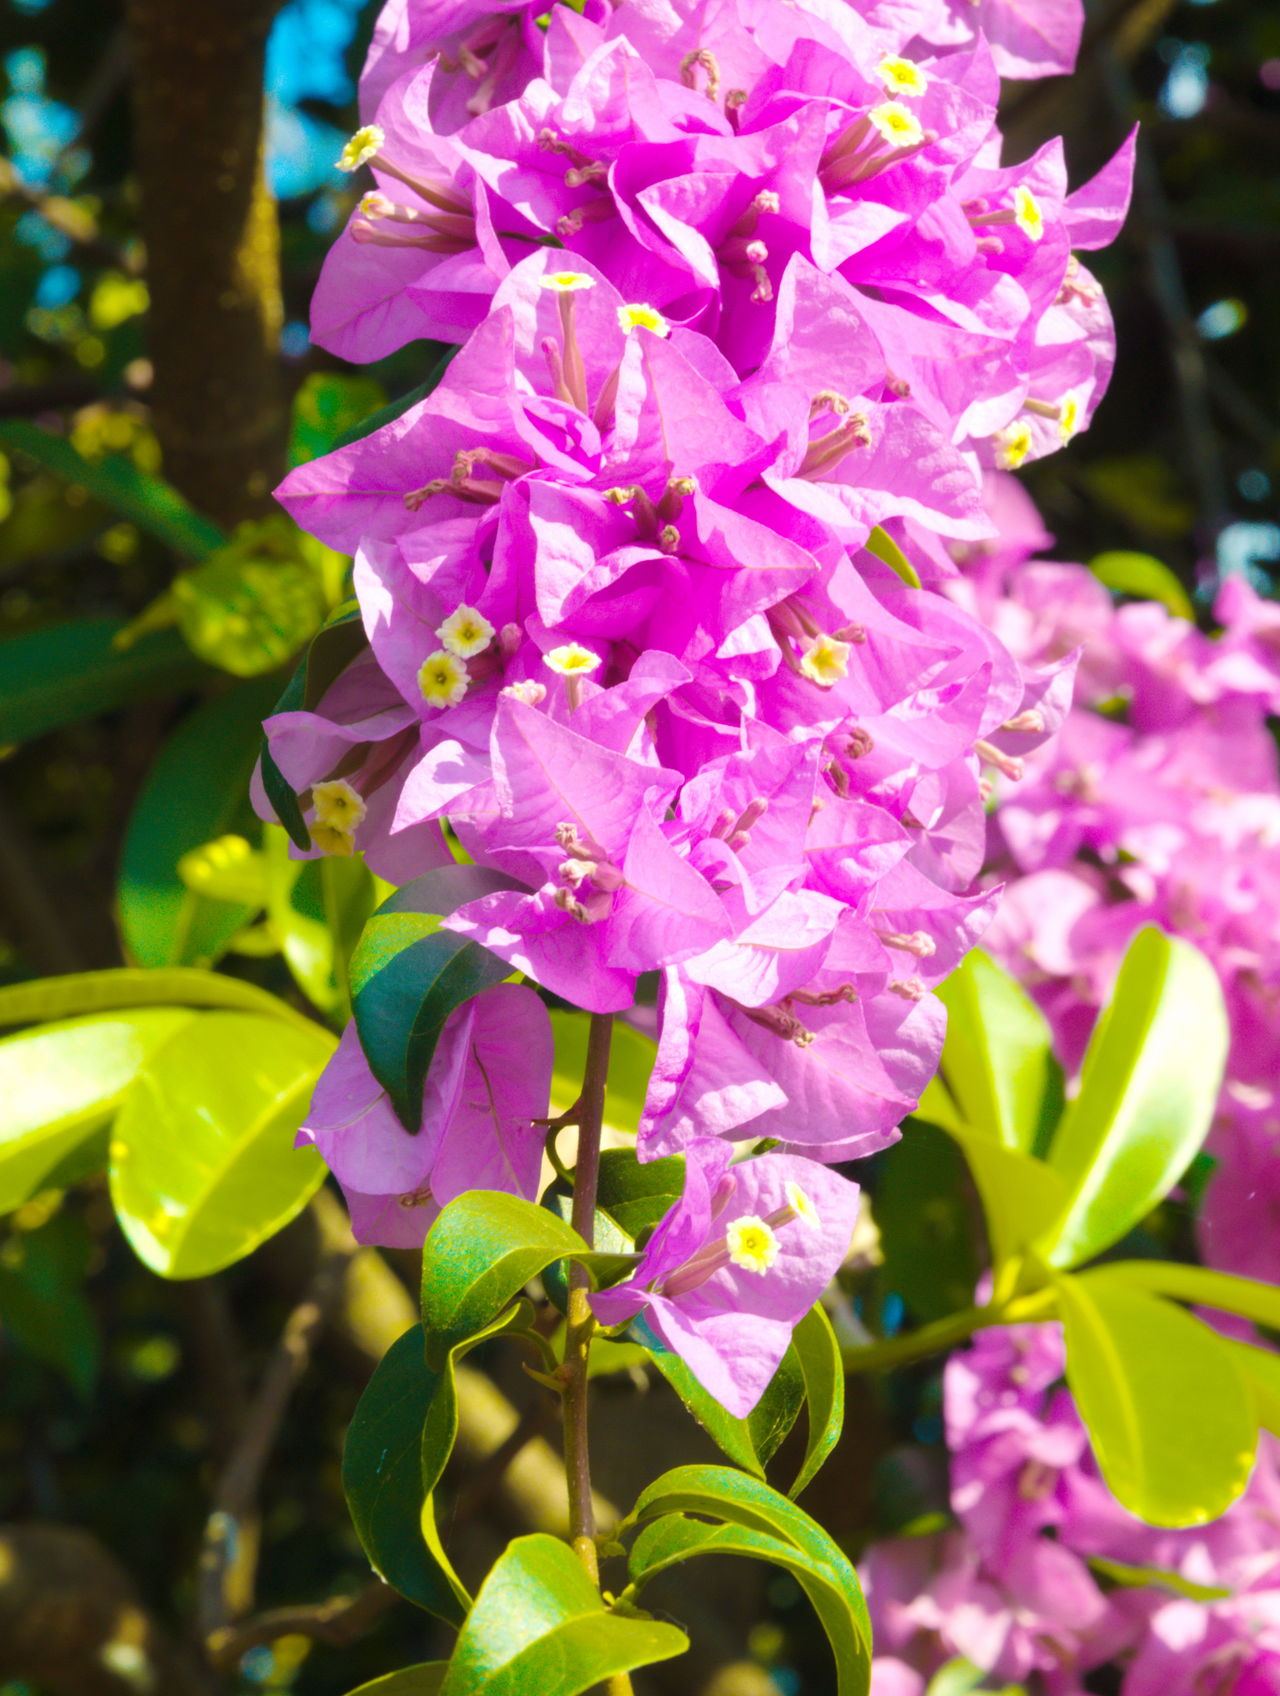 Pink Bougainvillea flower Beauty In Nature Blooming Bougainvillea Bougainvillea Flower Close-up Day Flower Flower Head Flowers,Plants & Garden Fragility Freshness Growth Leaf Leaves Nature No People Outdoors Petal Pink Flower Plant Purple